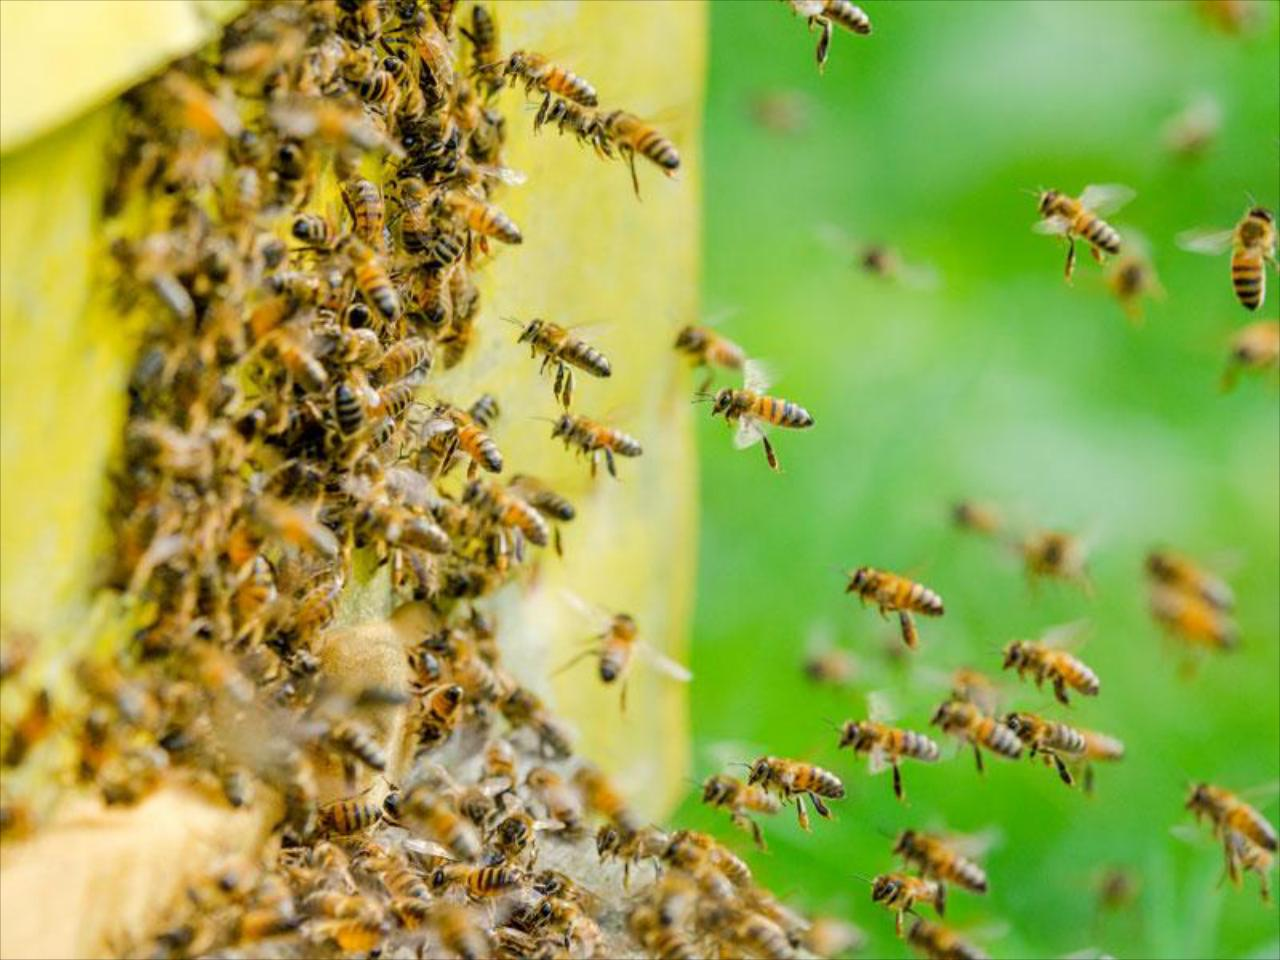 BEE REMOVAL SERVICES IN GREATER FORT MYERS, FL